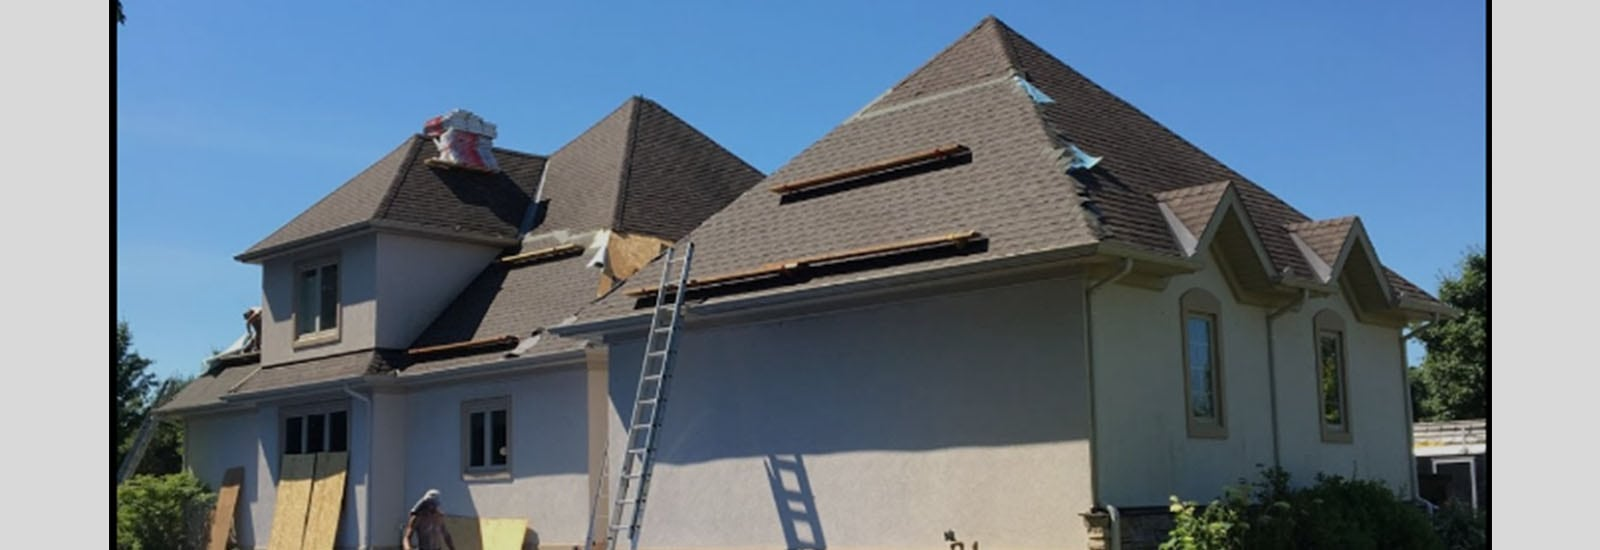 best roofing companies in ottawa